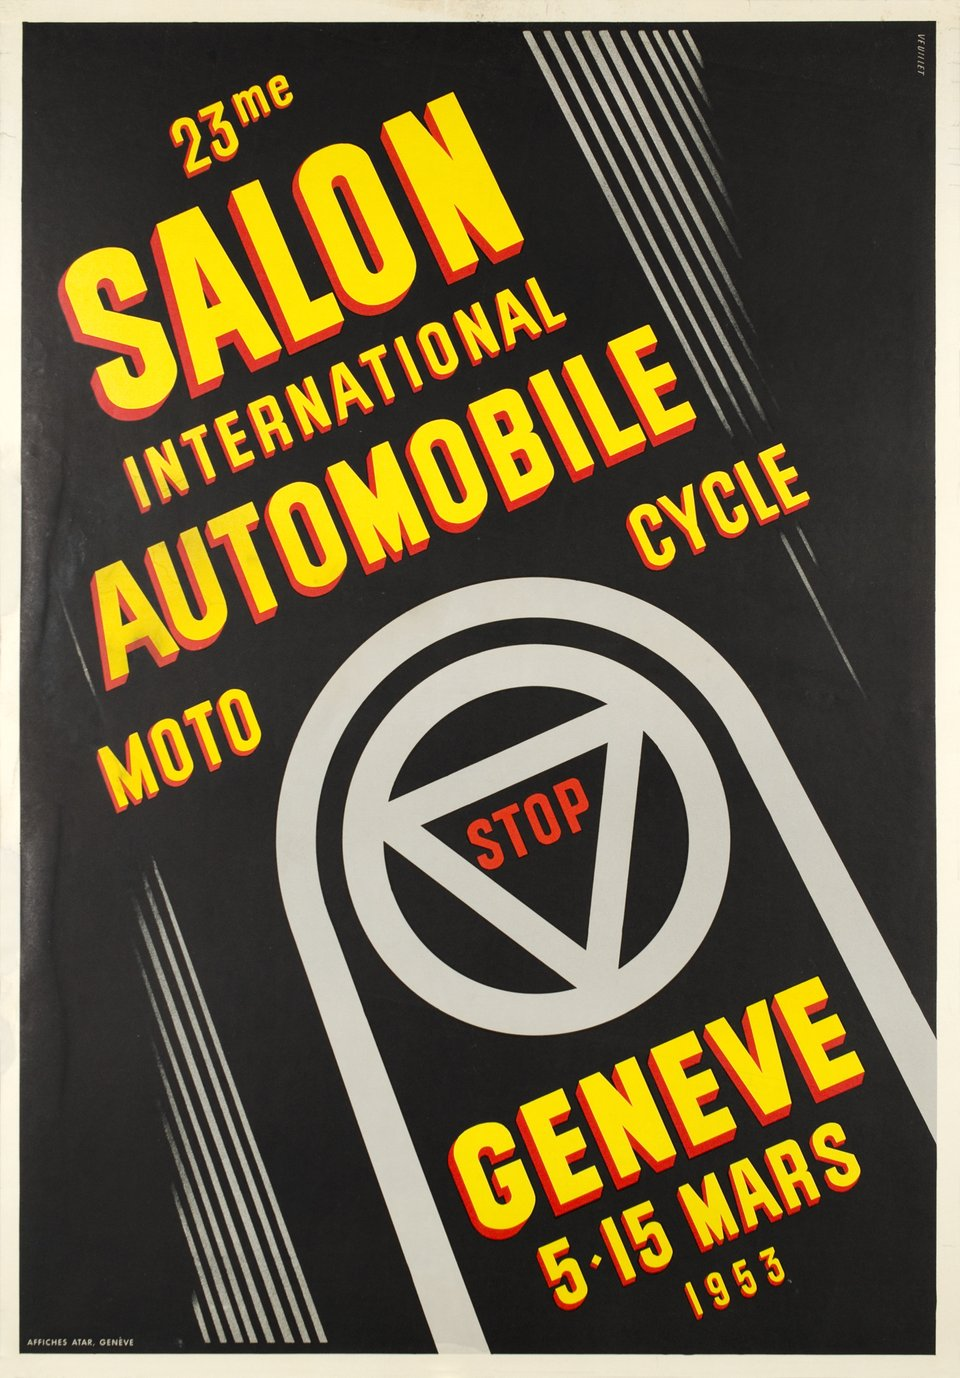 Genève Mars 1953, 23ème Salon International Automobile Moto Cycle – Vintage poster – Antoine VEUILLET – 1953